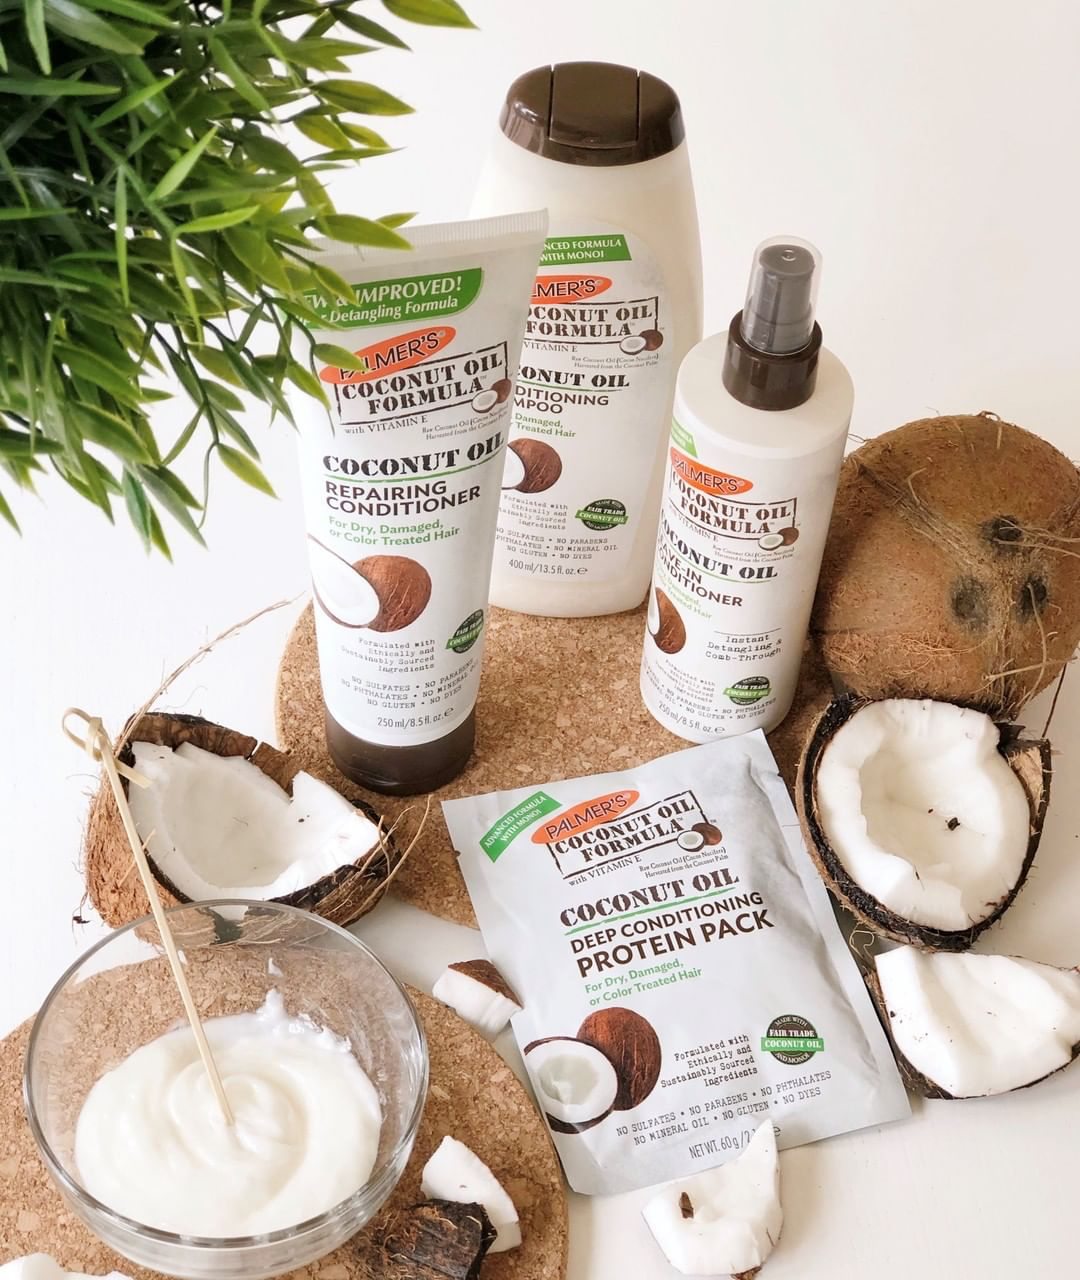 Palmer's Coconut Oil Formula Hair products for damaged hair on table with coconuts